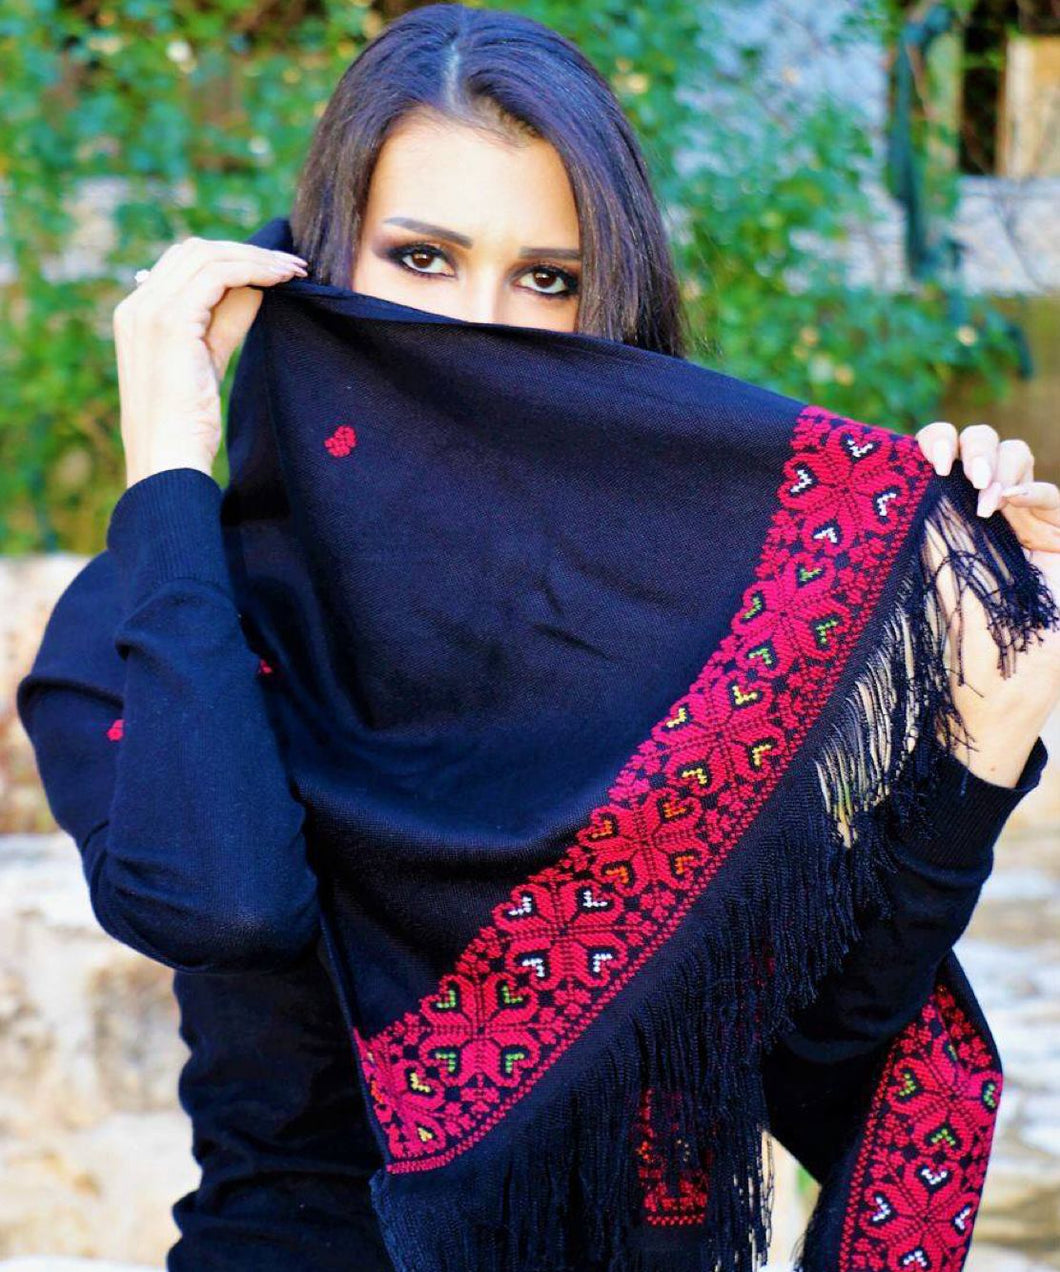 Black scarf with red embroidery - Falastini Brand